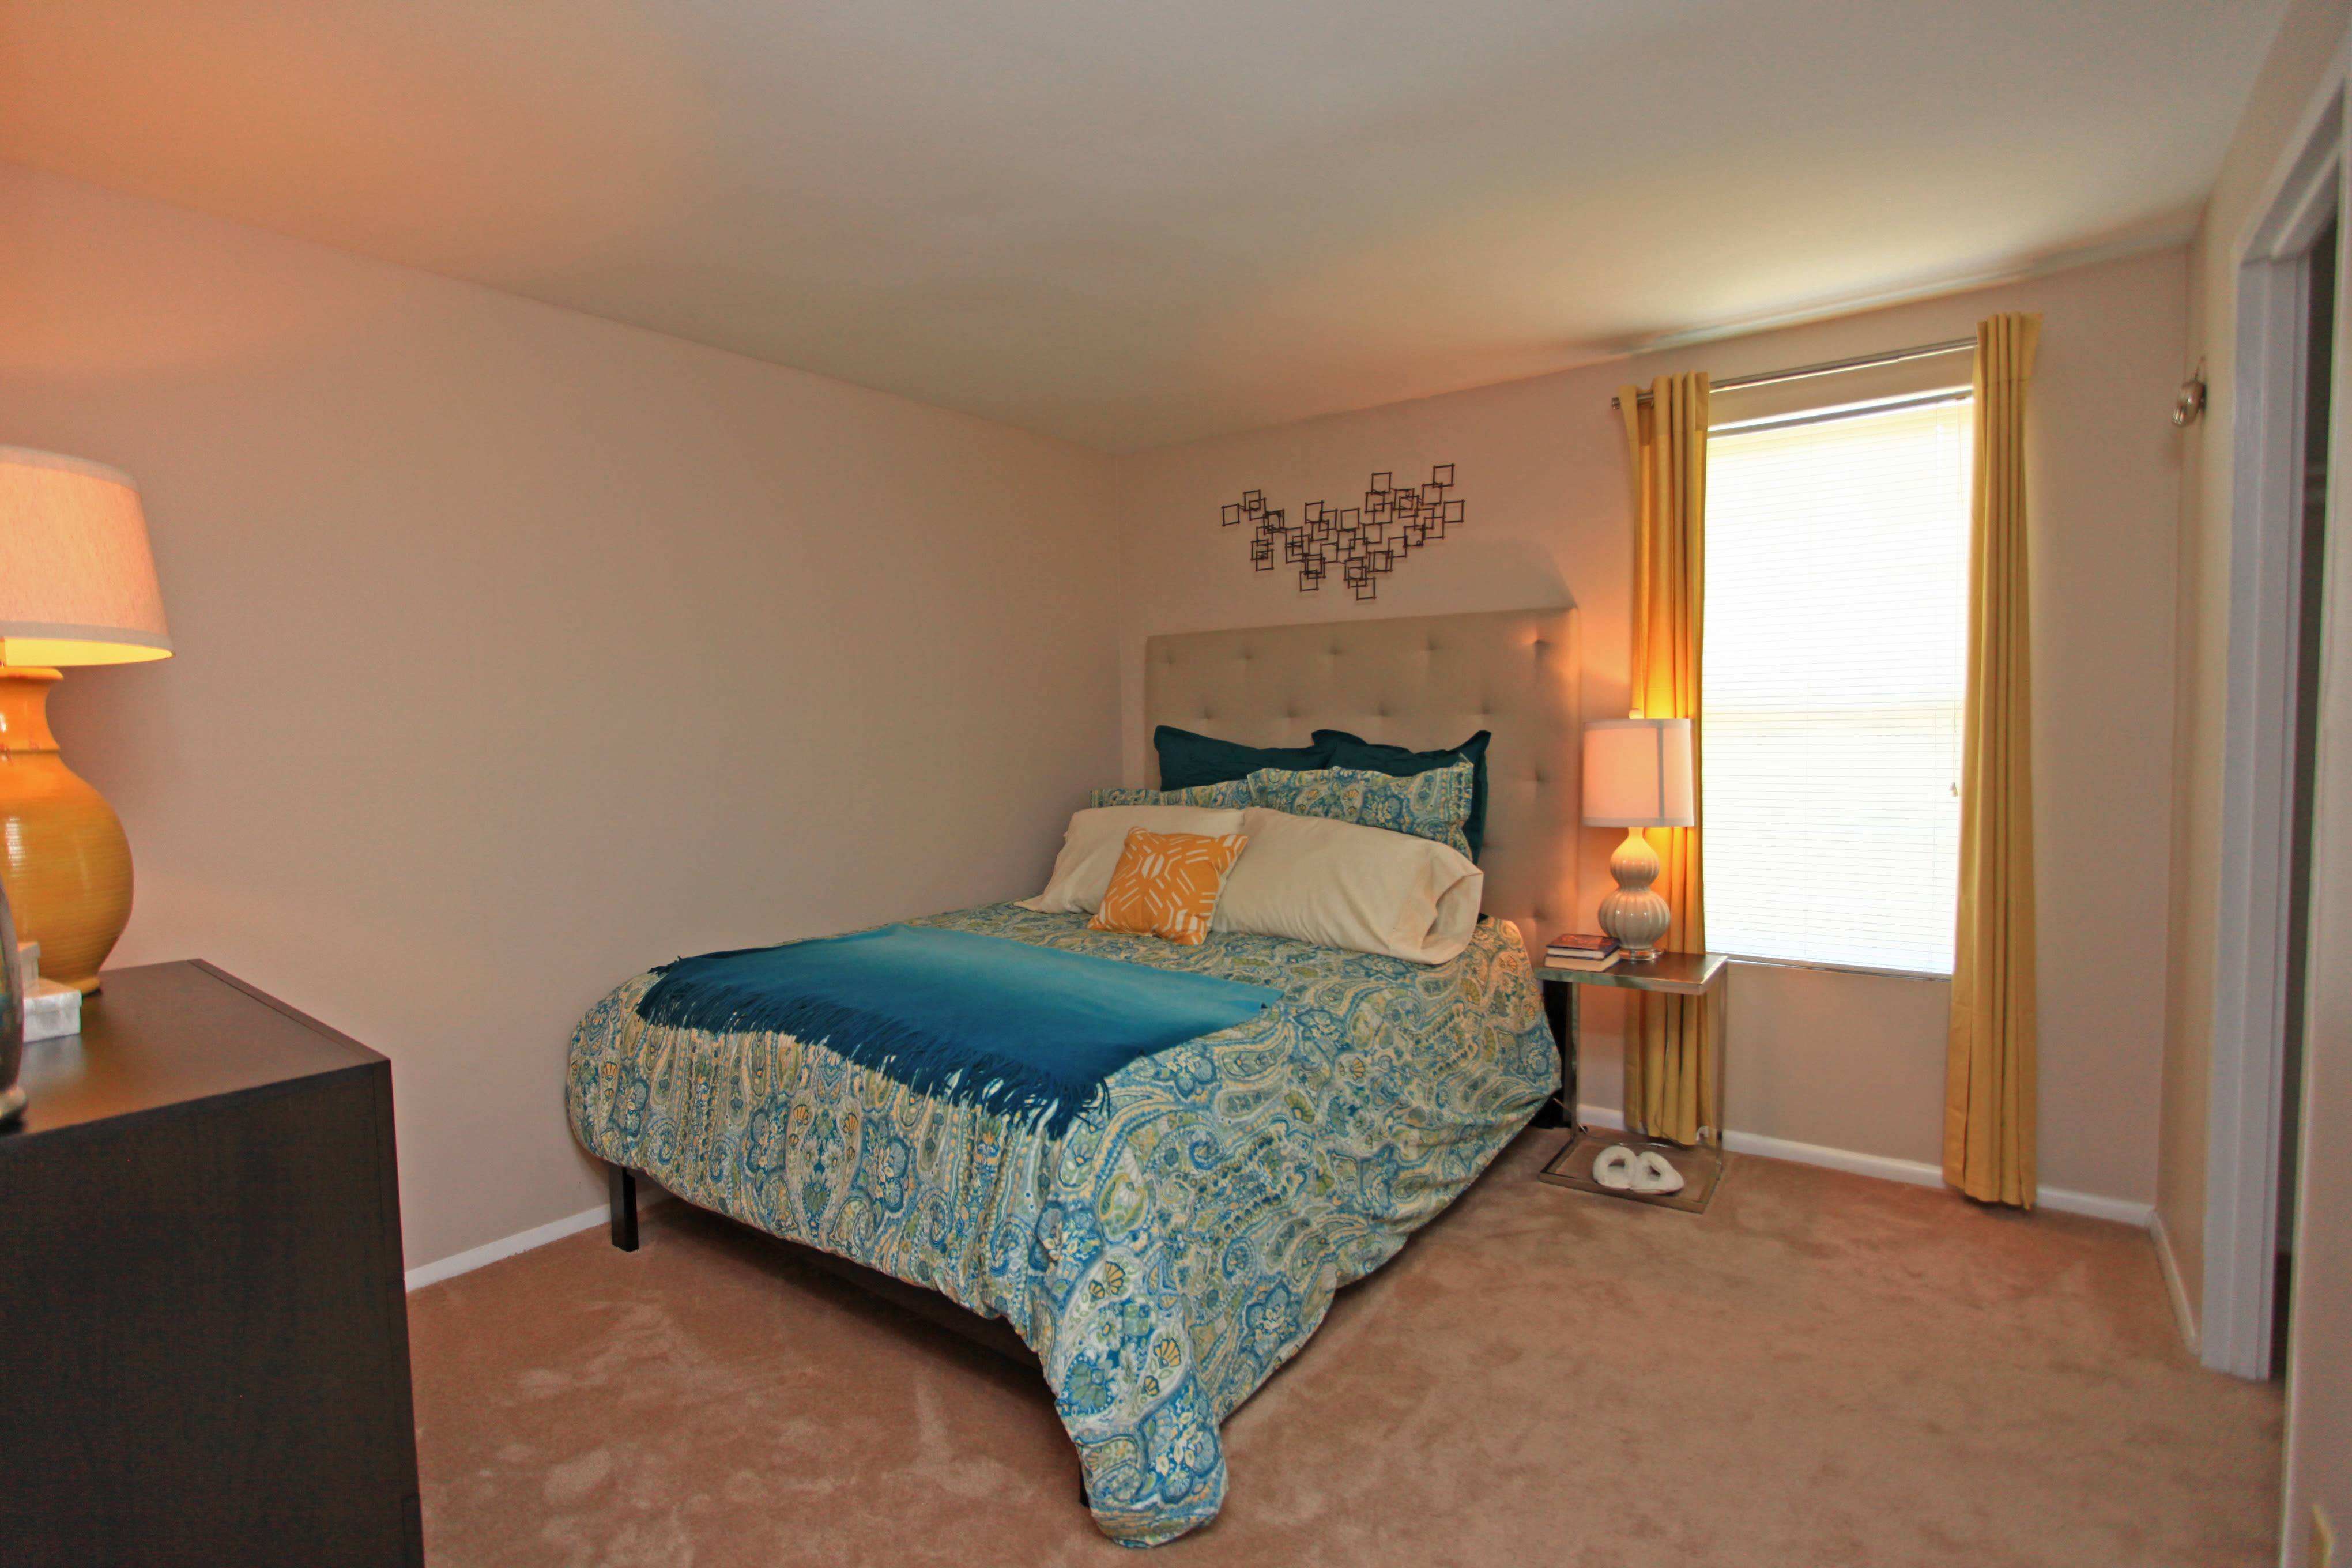 Our apartments in Halethorpe, Maryland showcase a beautiful bedroom